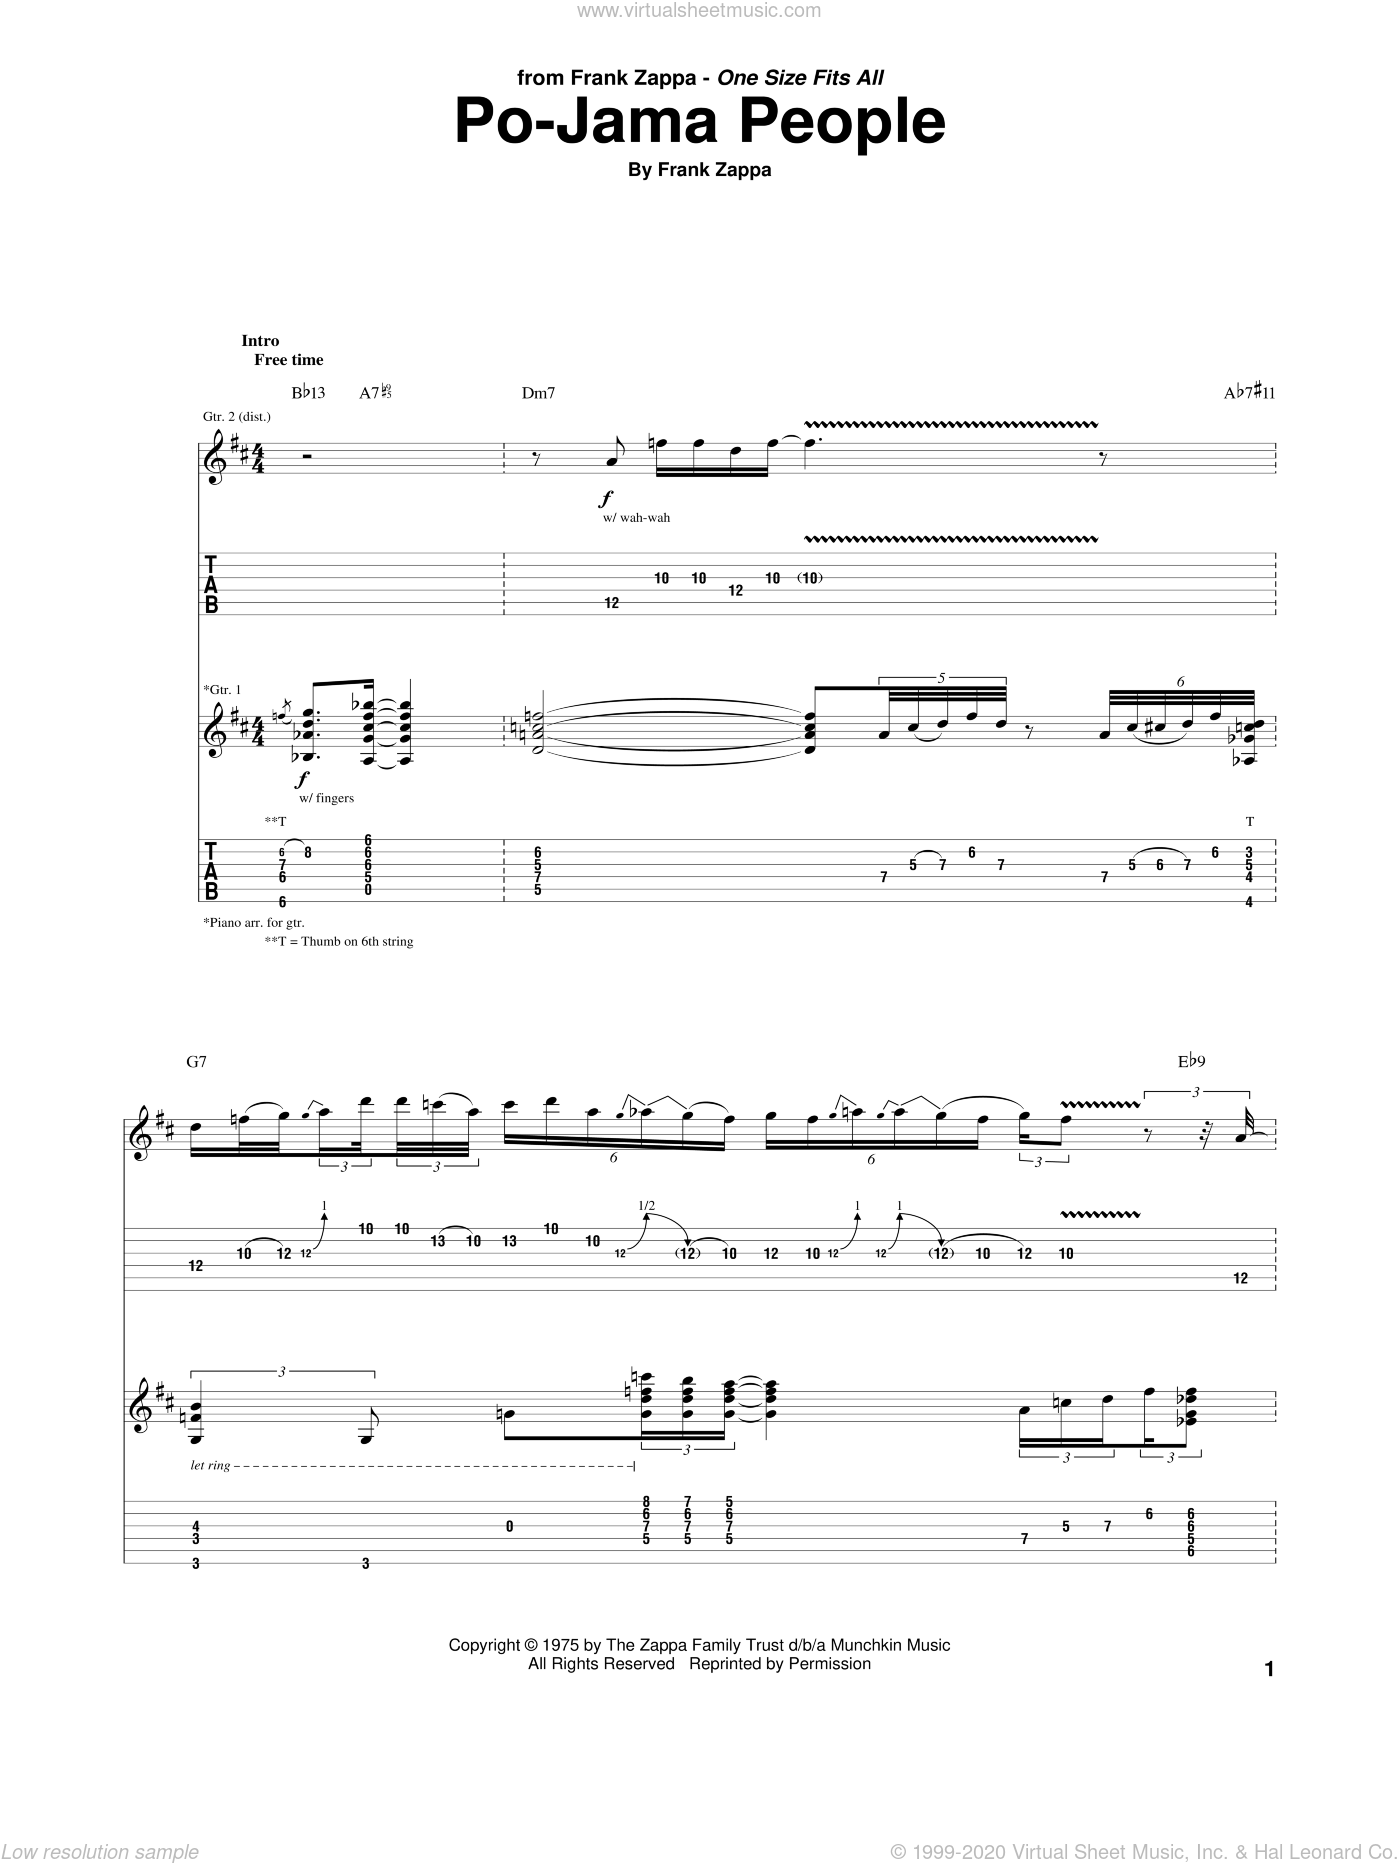 Po-Jama People sheet music for guitar (tablature) by Frank Zappa, intermediate. Score Image Preview.